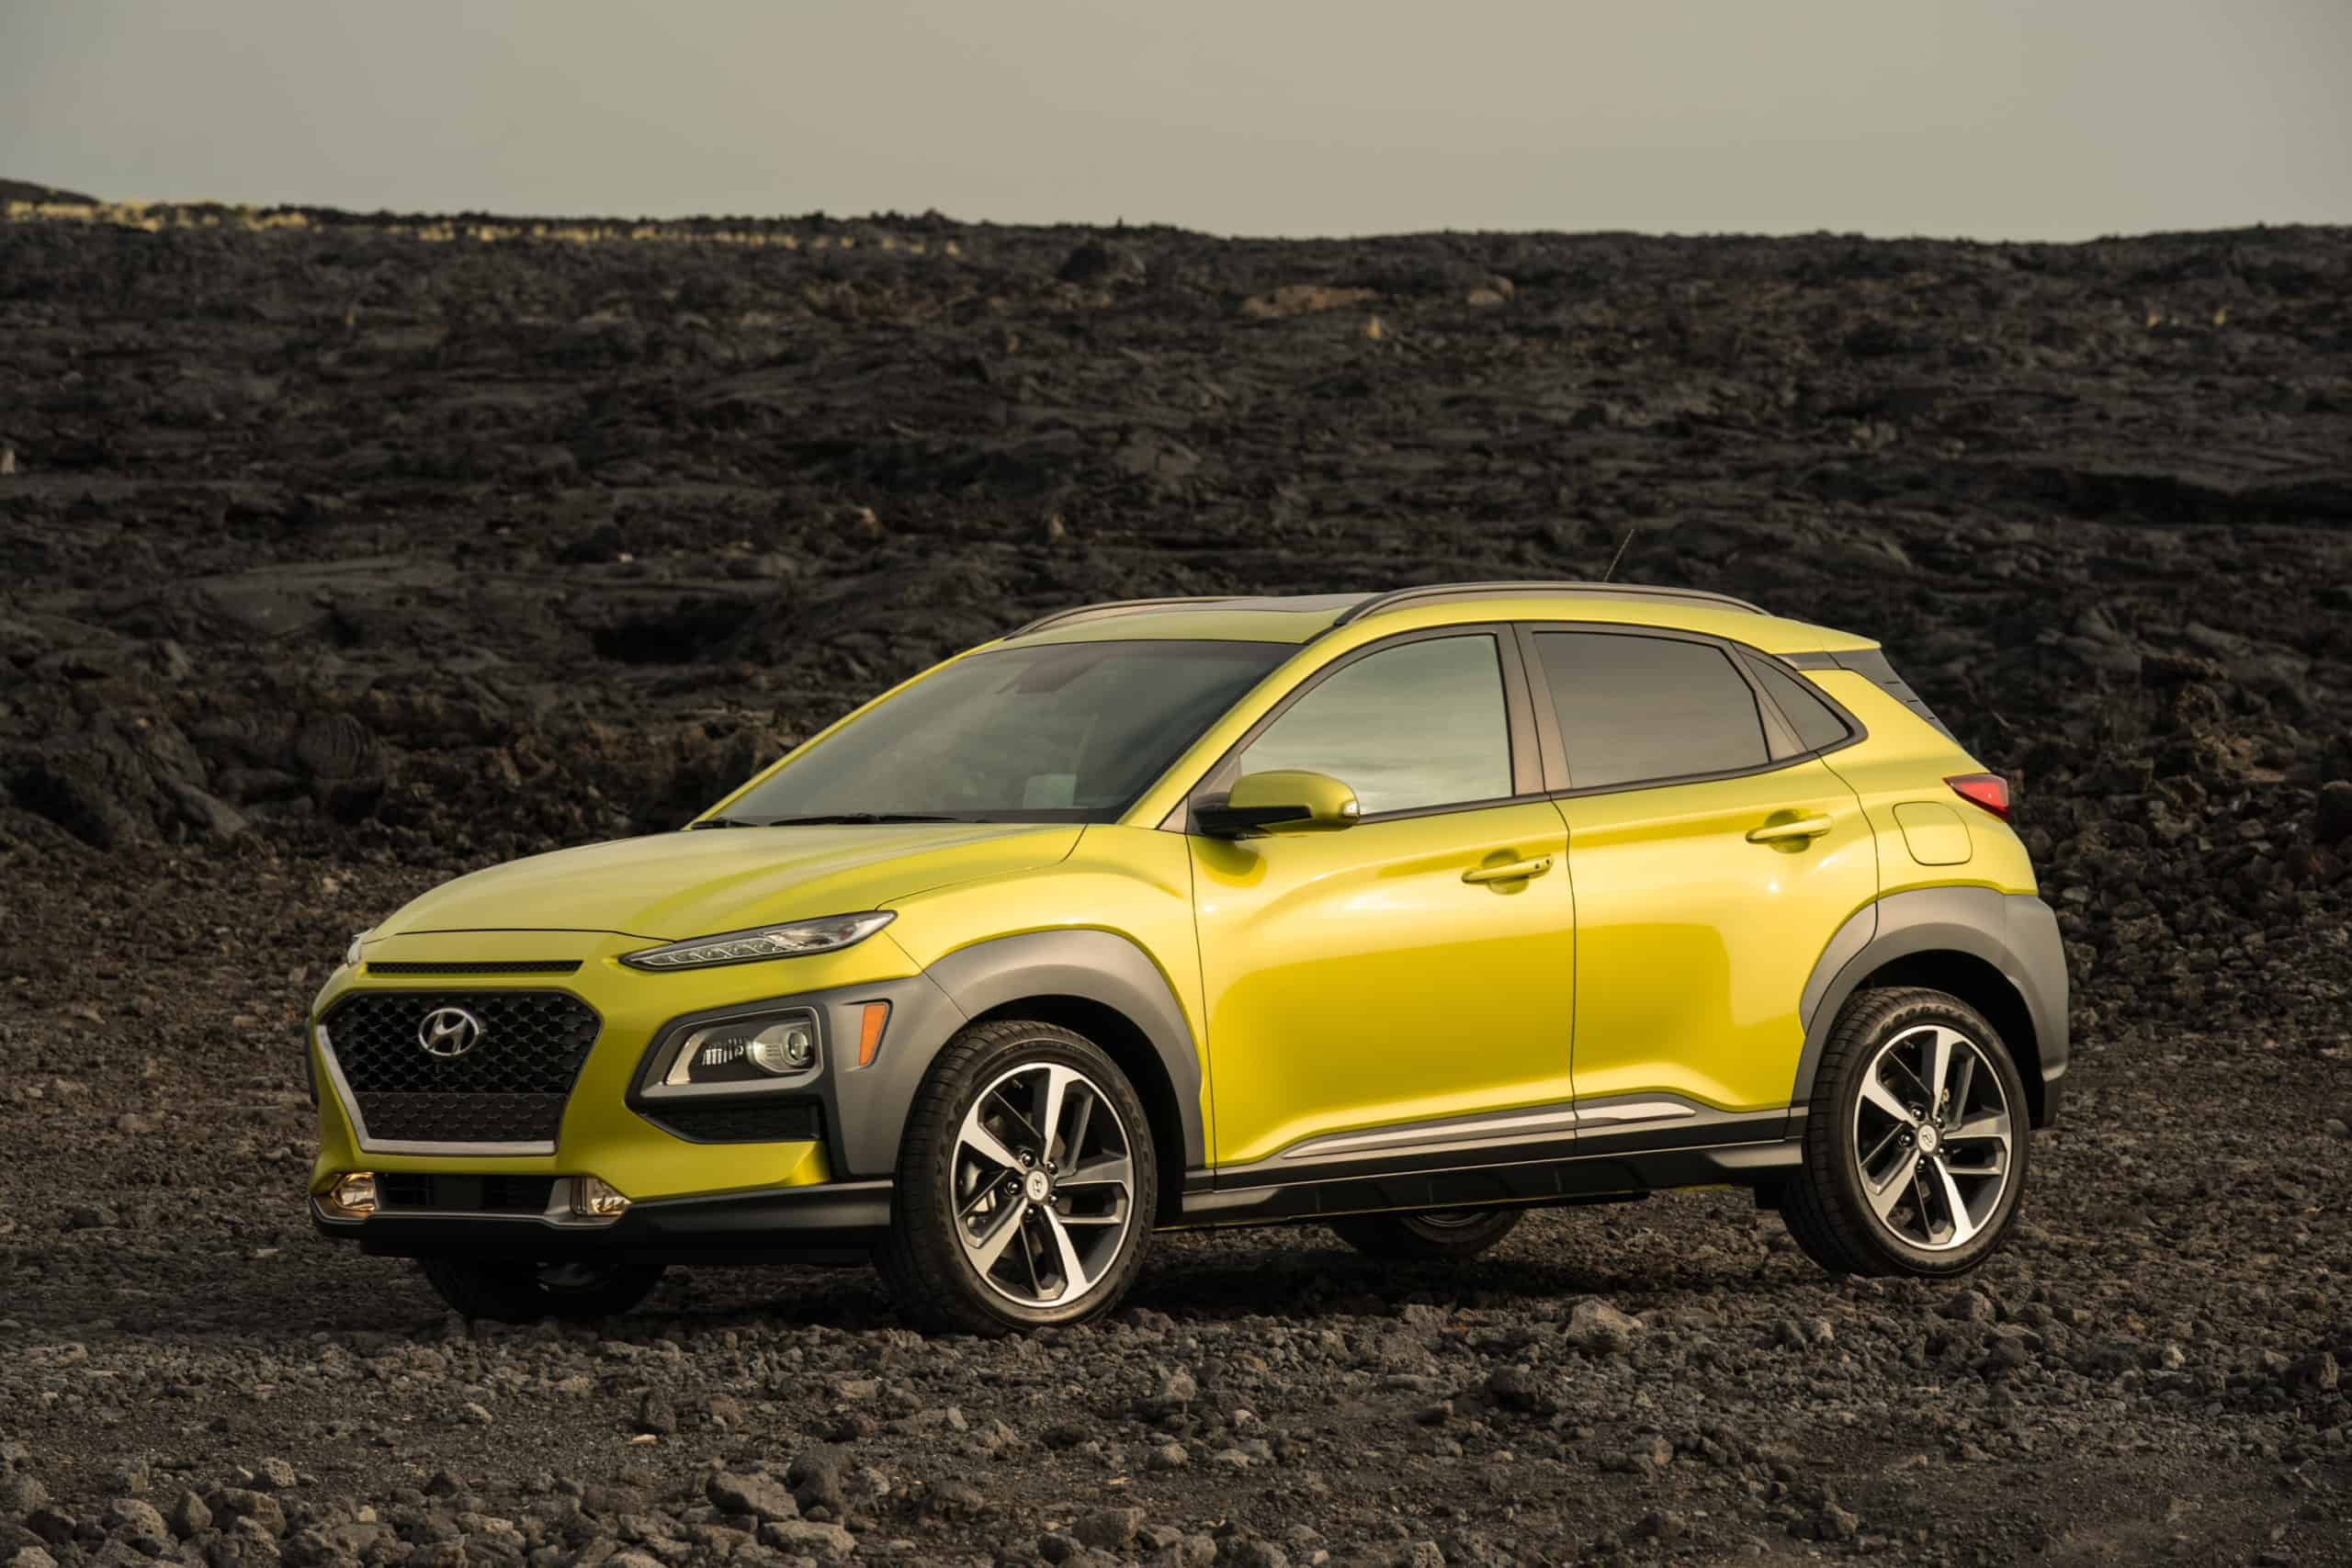 bright green Hyundai Kona in black rocks